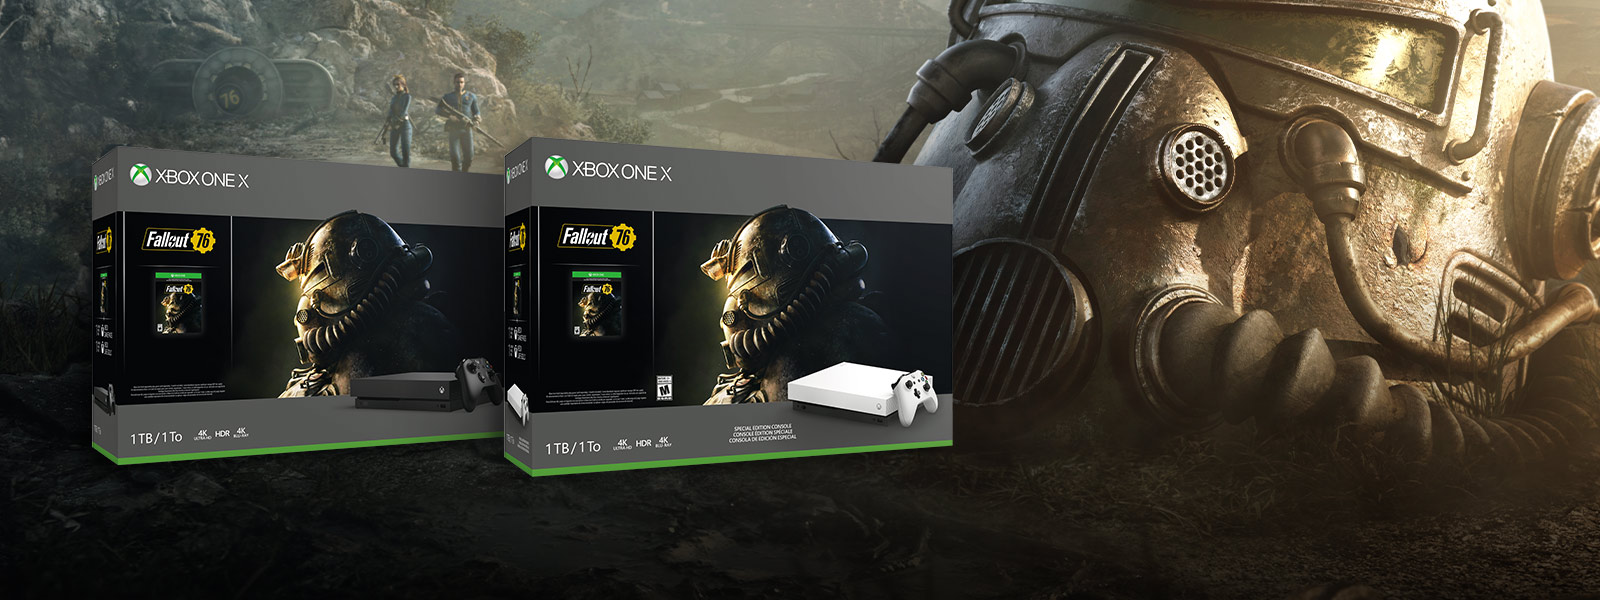 Xbox One X and Xbox One X Robot White Special Edition Fallout 76 bundle boxes